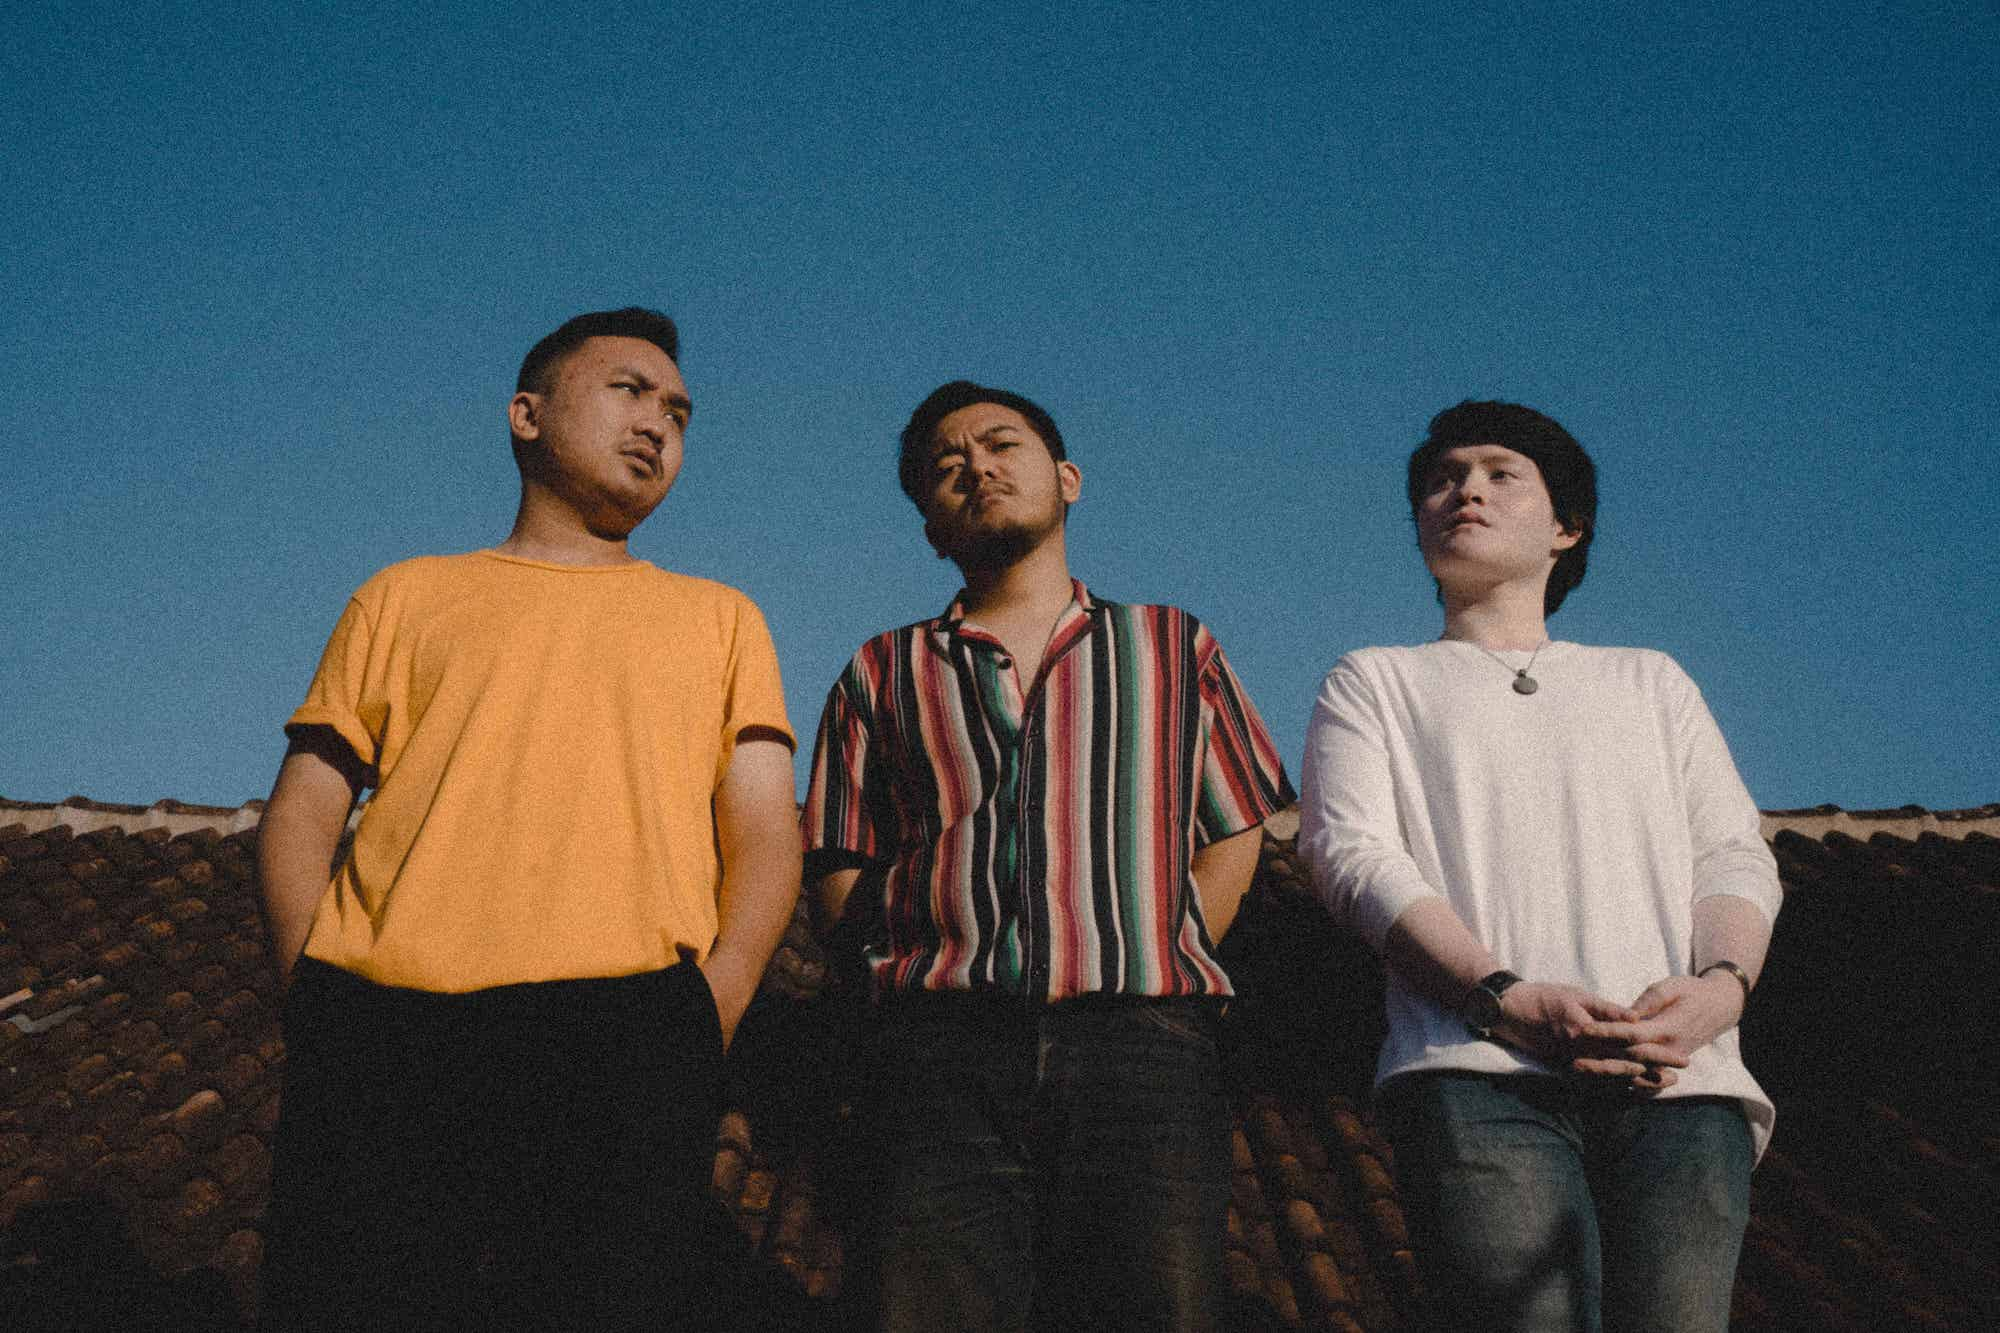 Wry: Elusive Single Review